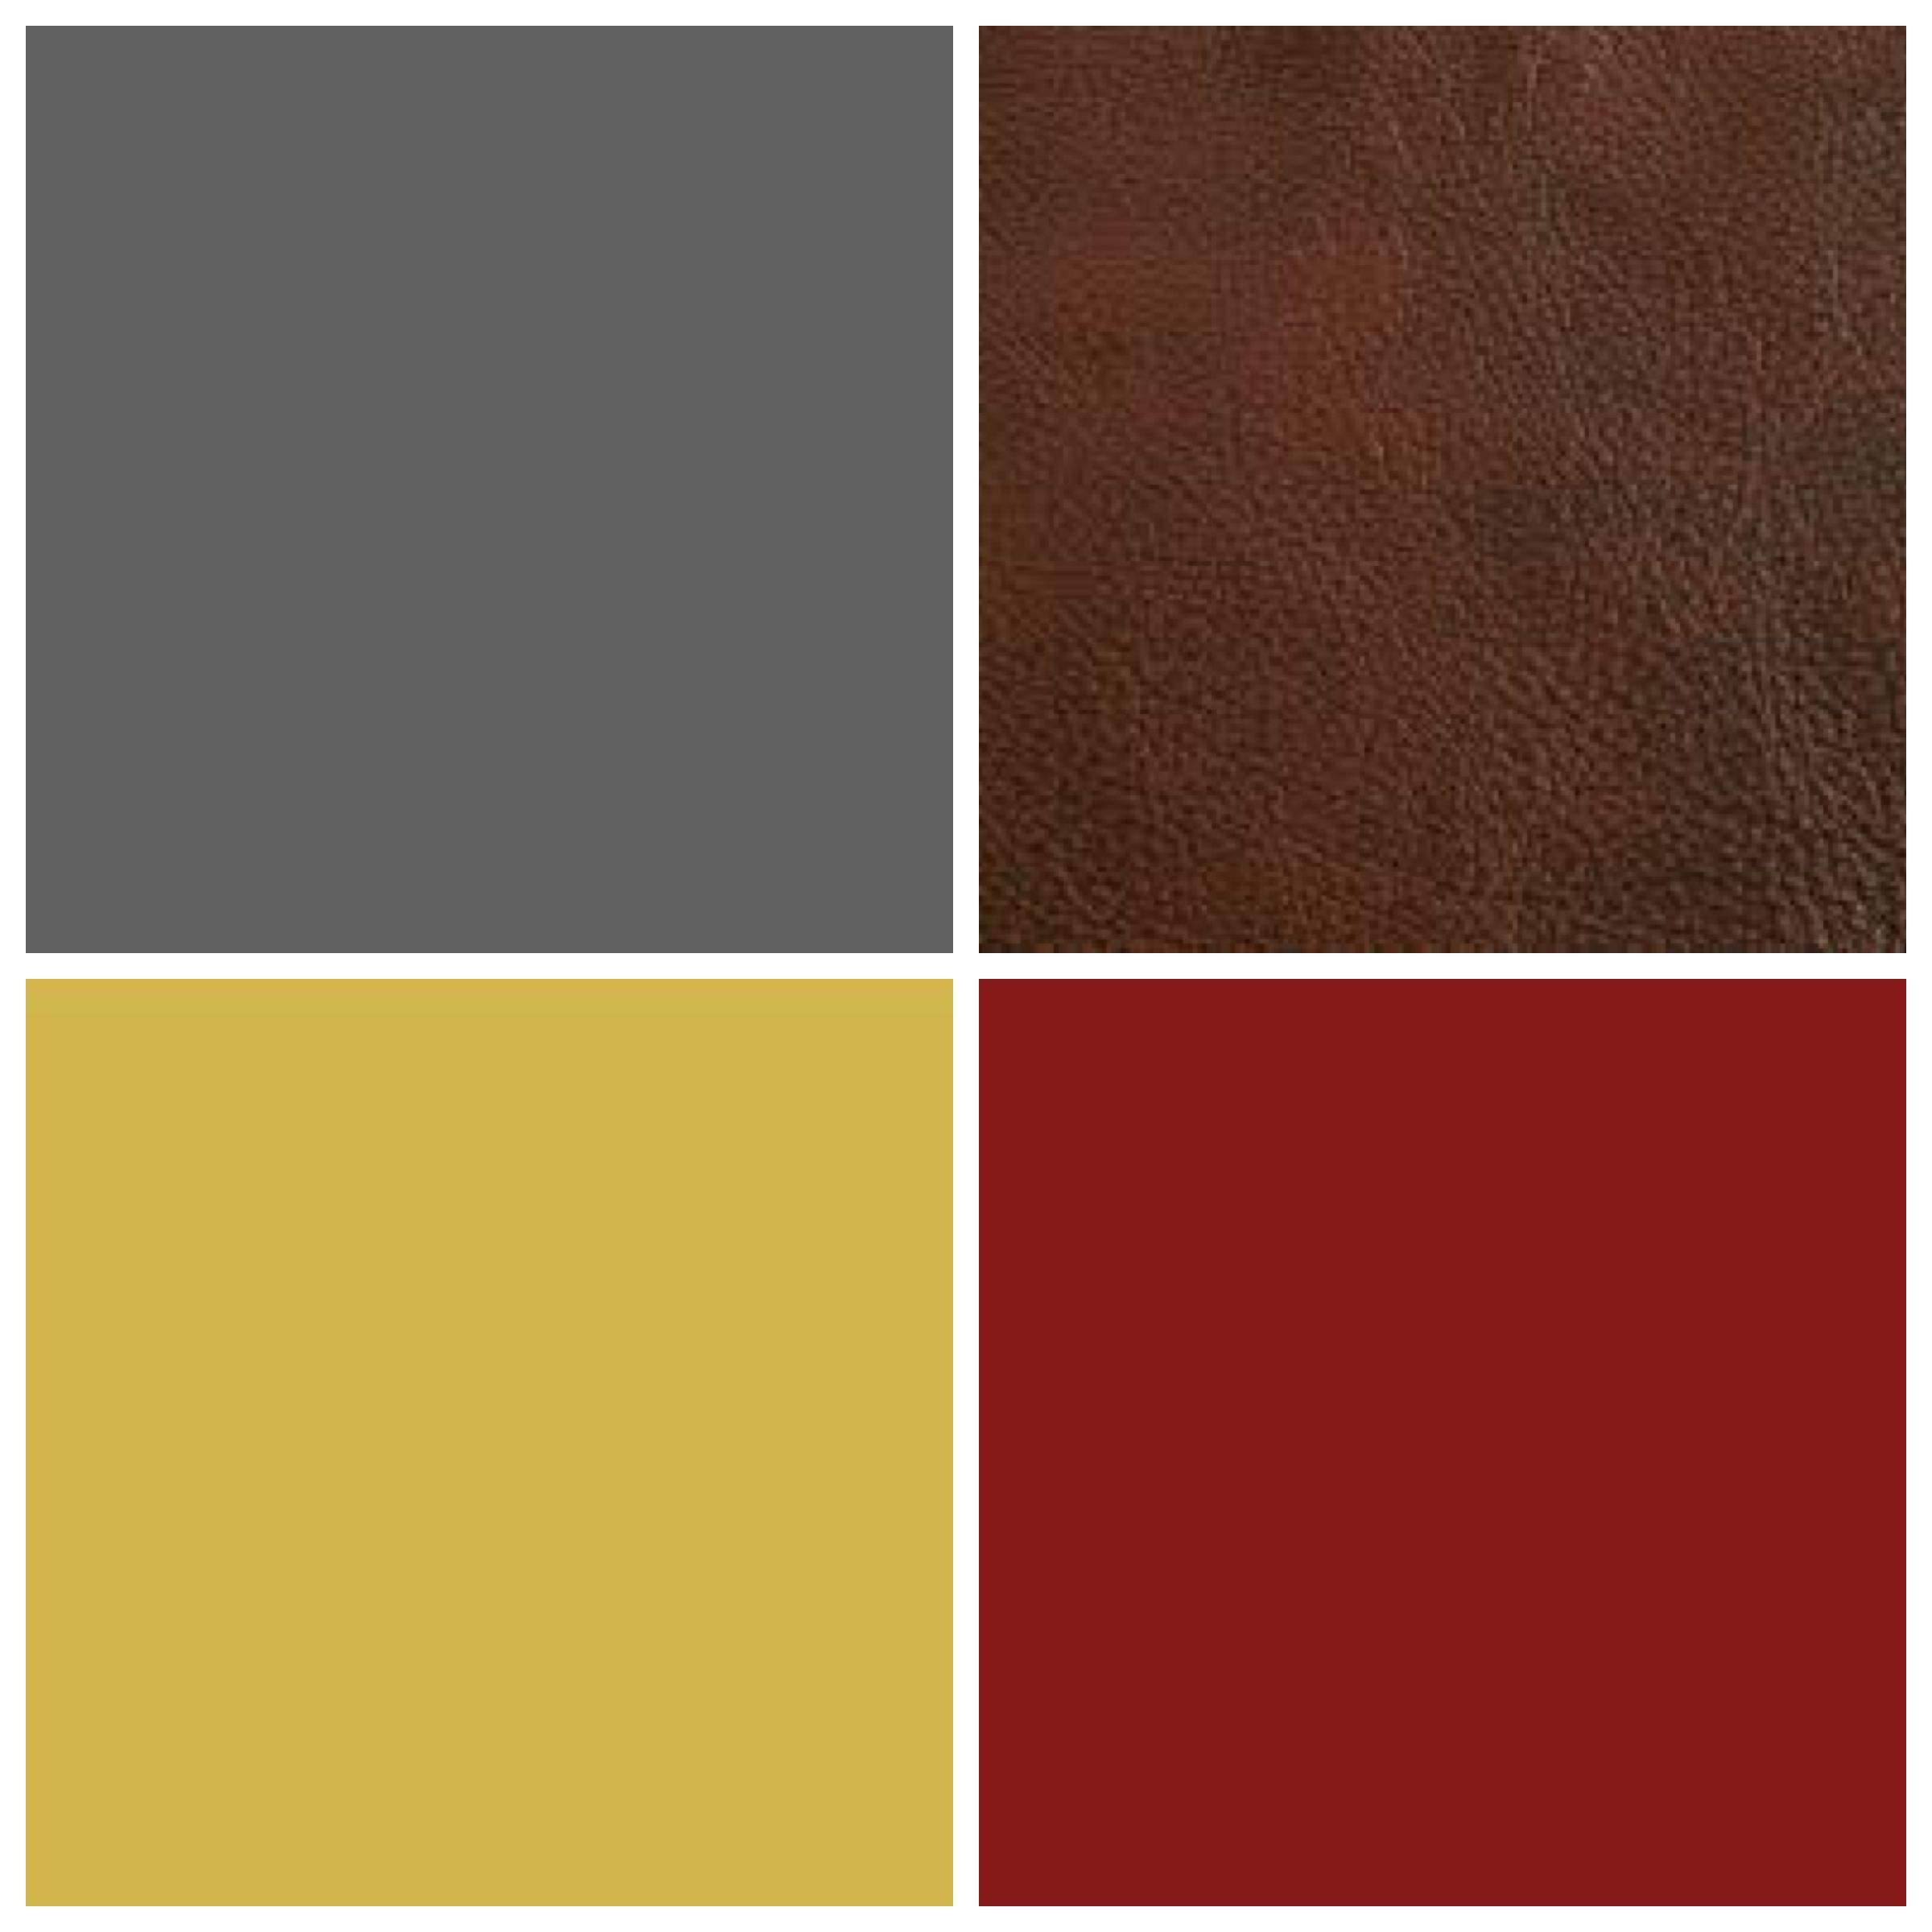 Tuscan Neutrals Our Living Room Color Palette Charcoal Gray Country Red Espresso Brown Yellow Gold Leather And Upholstered Furniture